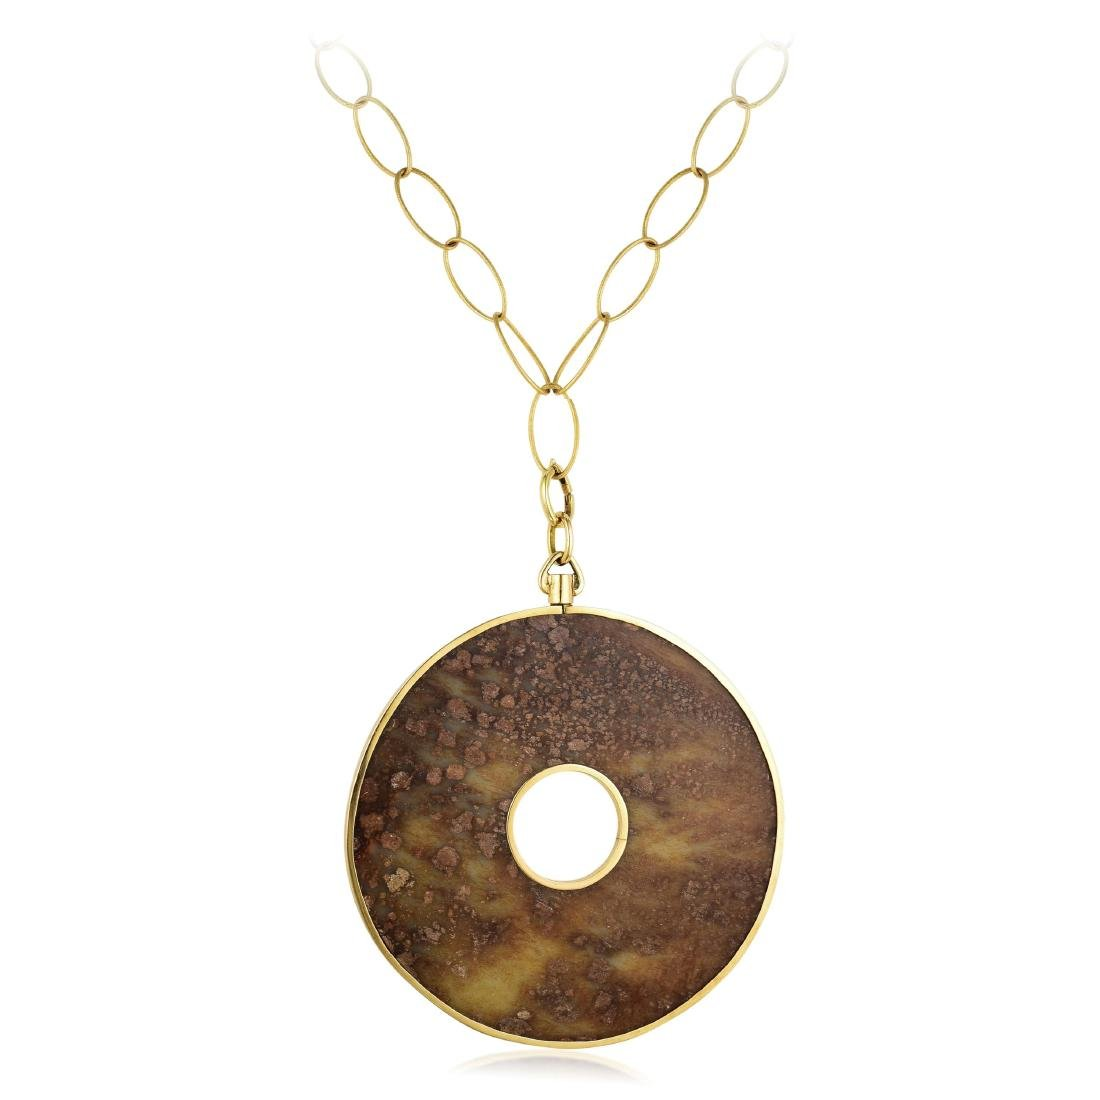 A 14K Gold and Jade Pendant Necklace